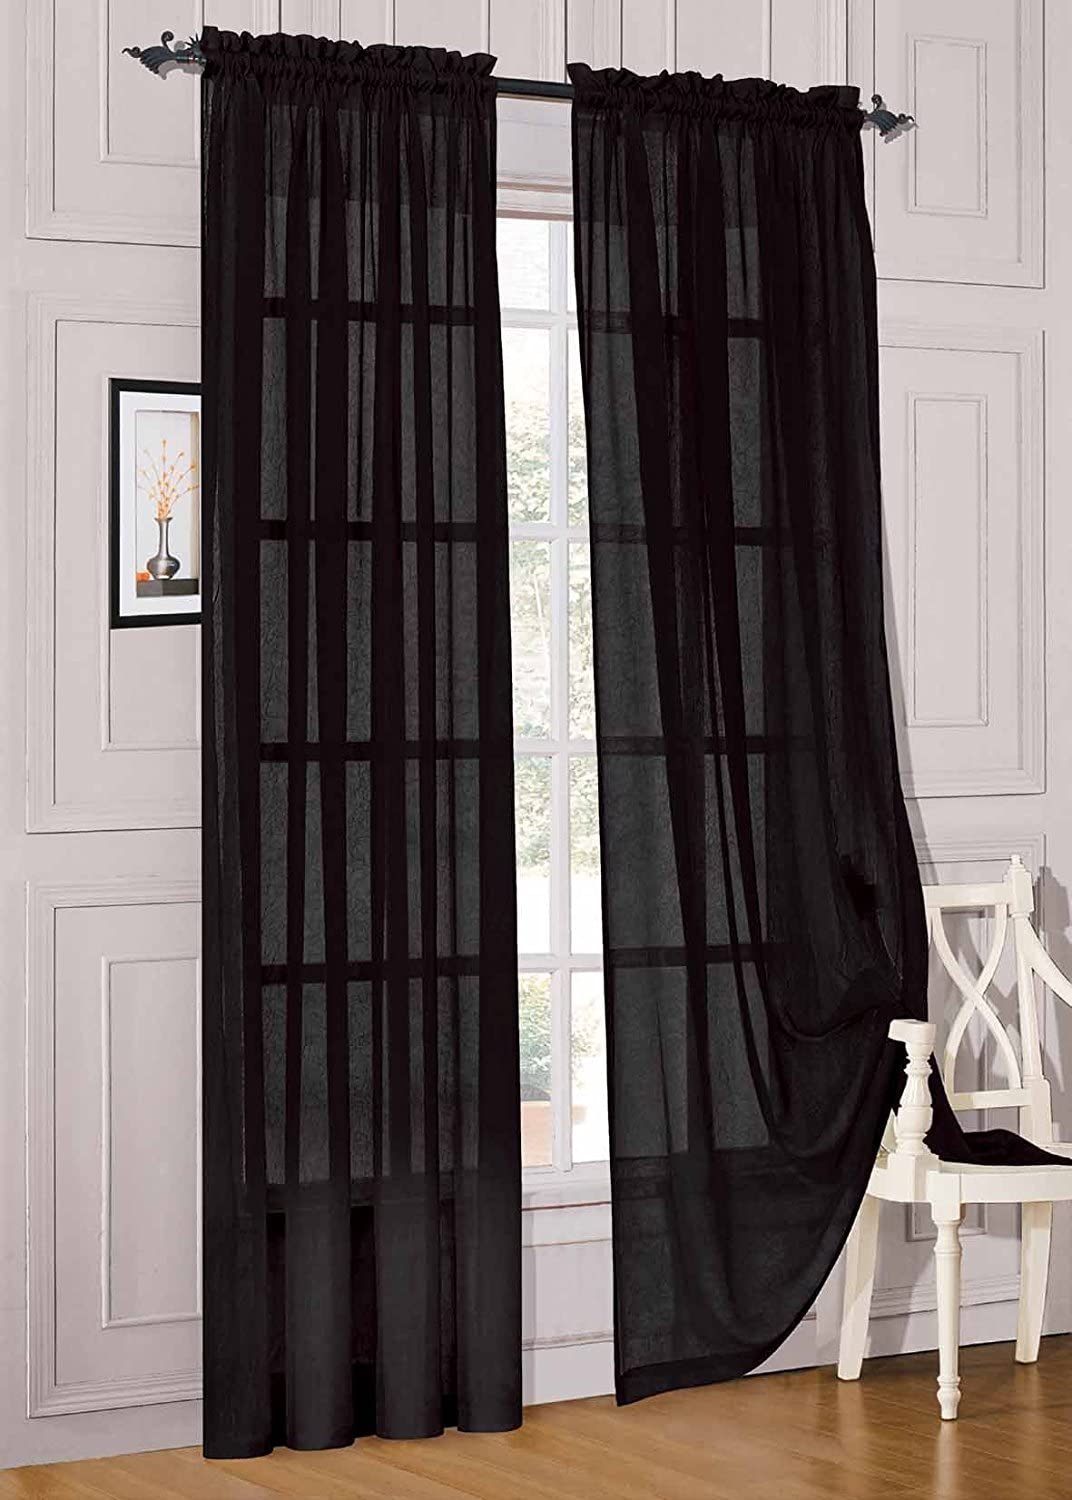 "WPM WORLD PRODUCTS MART Drape/Panels/Treatment Beautiful Sheer Voile Window Elegance Curtains for Bedroom & Kitchen, 57"" inch x 84"" inch, Set of 2 (Black)"